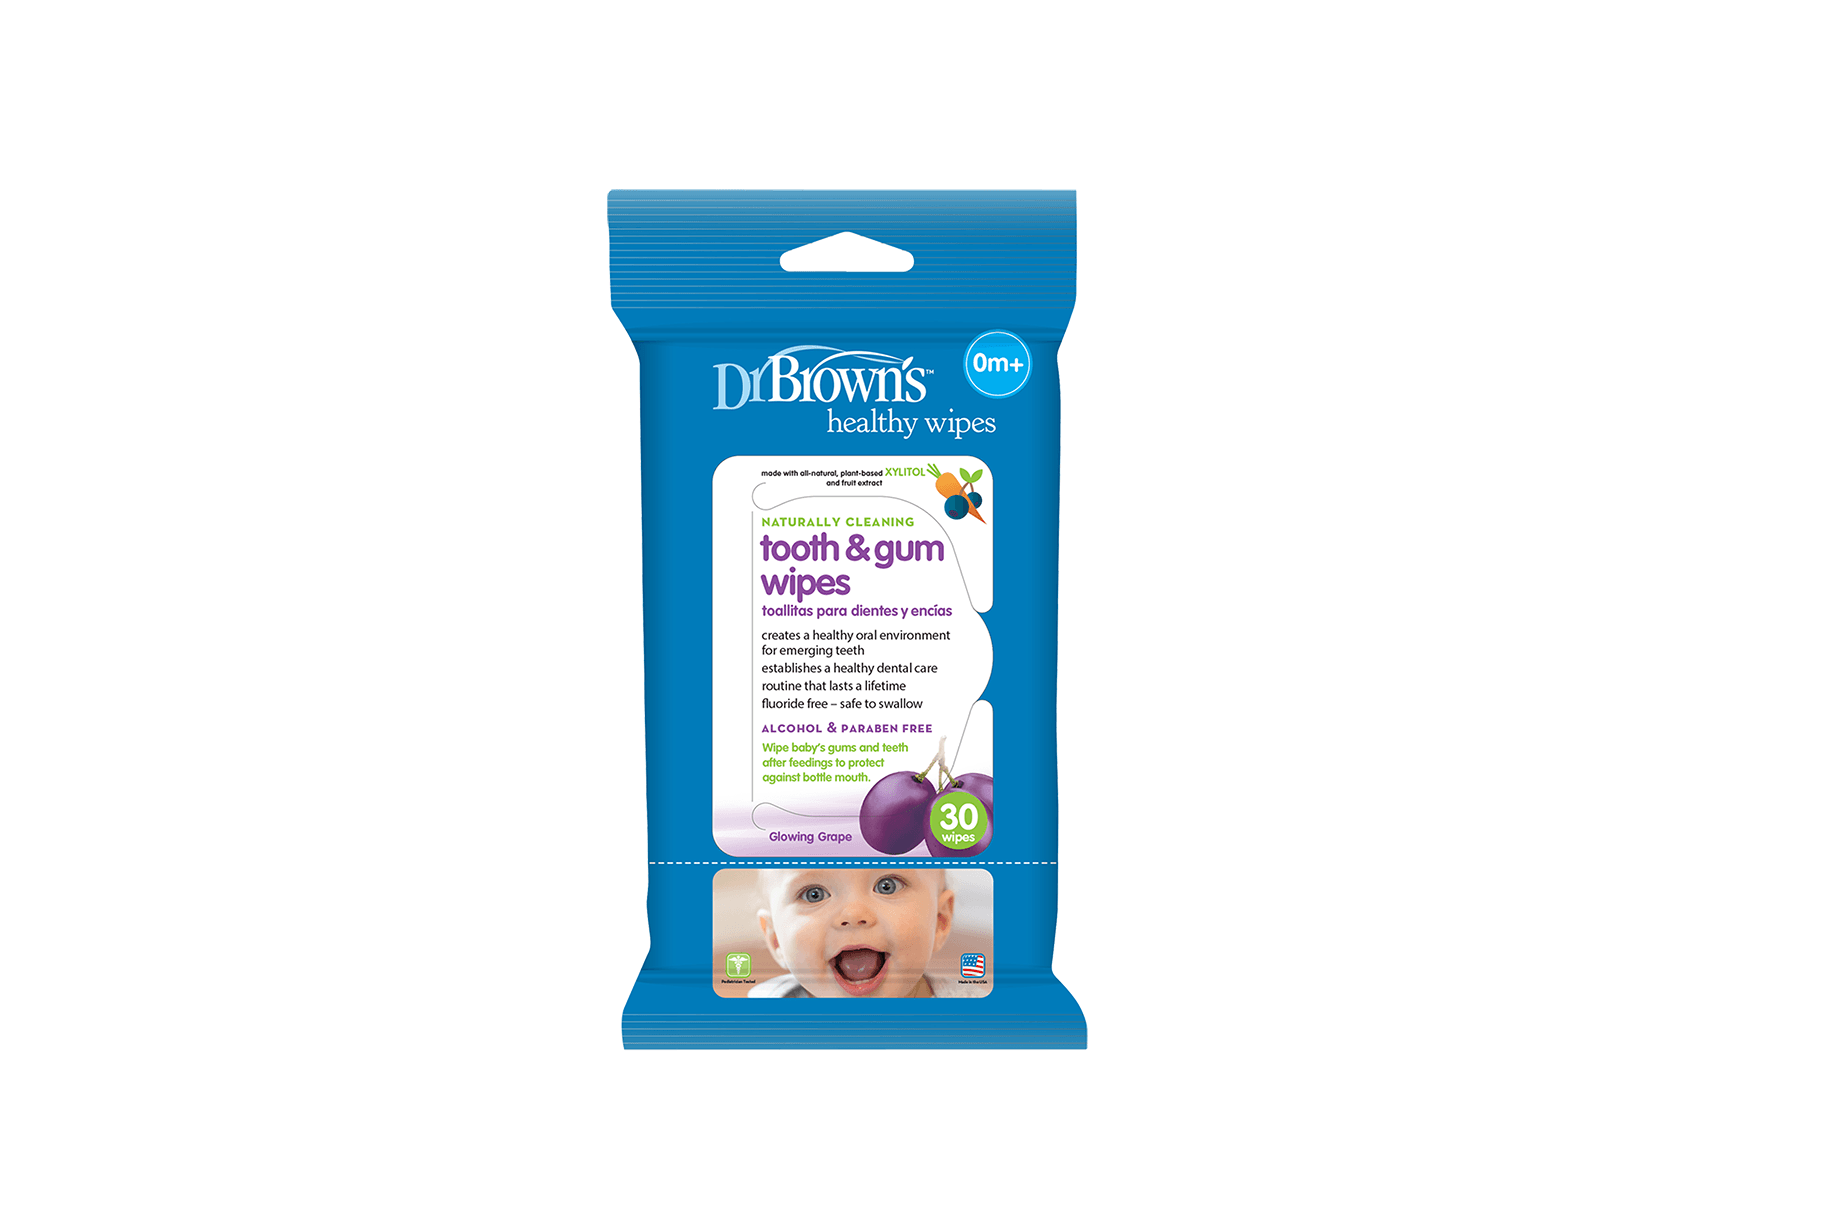 3. Dr Brown's Tooth & Gum Wipes